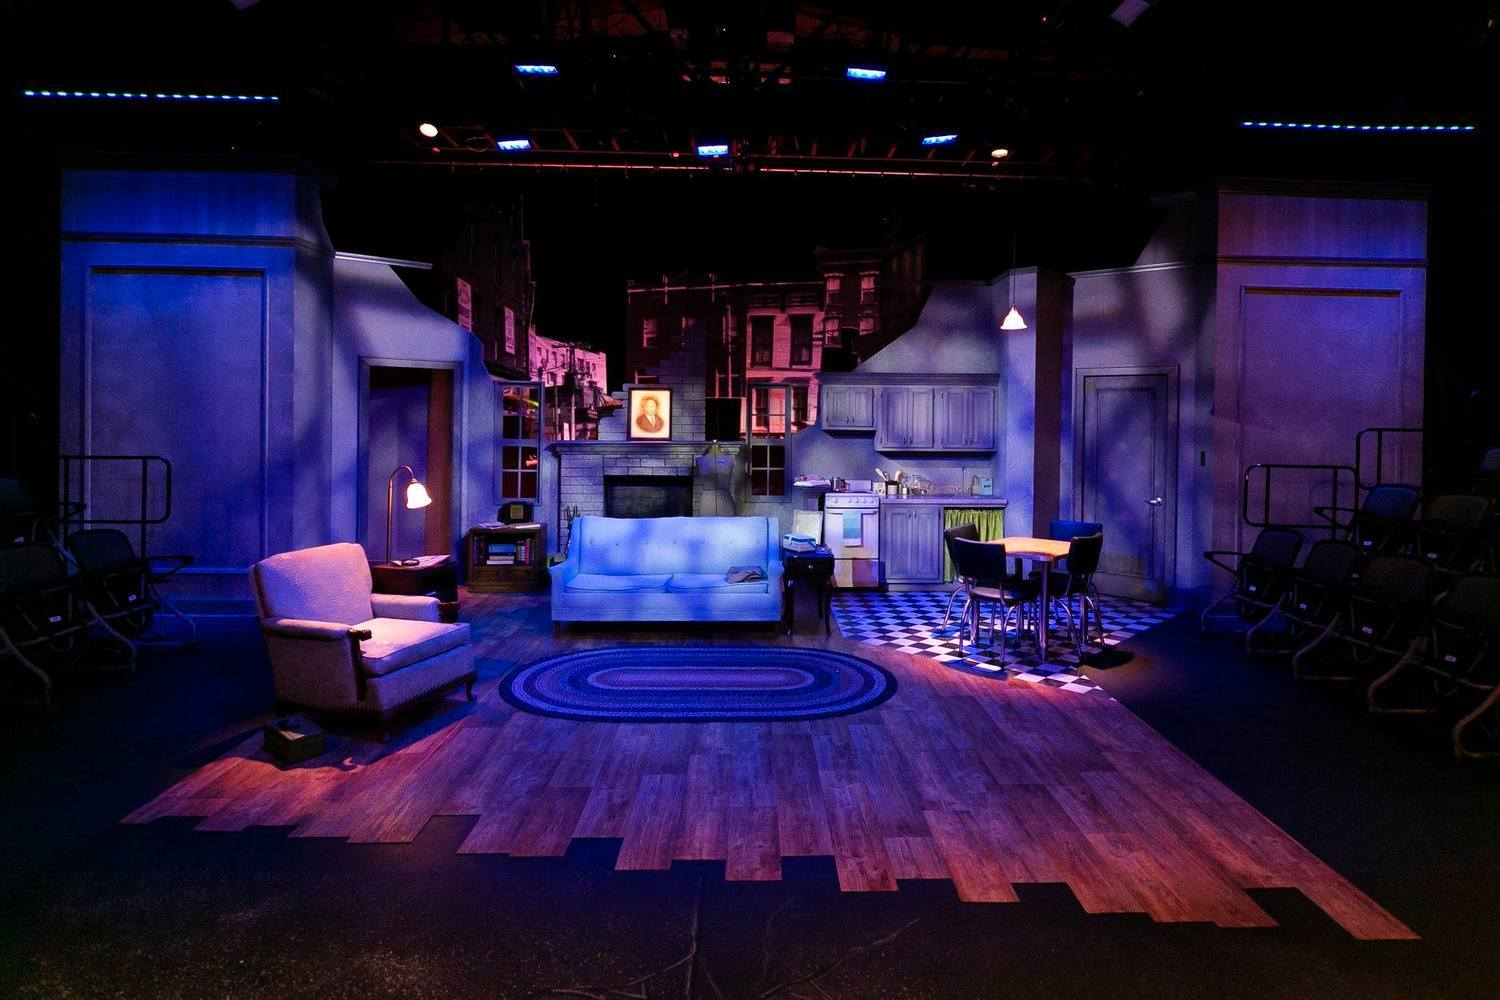 BWW Review: RACISM, THE 1950'S,AND STRONG LIFE LESSONS ARE THE ROOT OF LYNNE NOTTAGE'S POWERFUL CRUMBS FROM THE TABLE OF JOY. at FreeFall Theatre